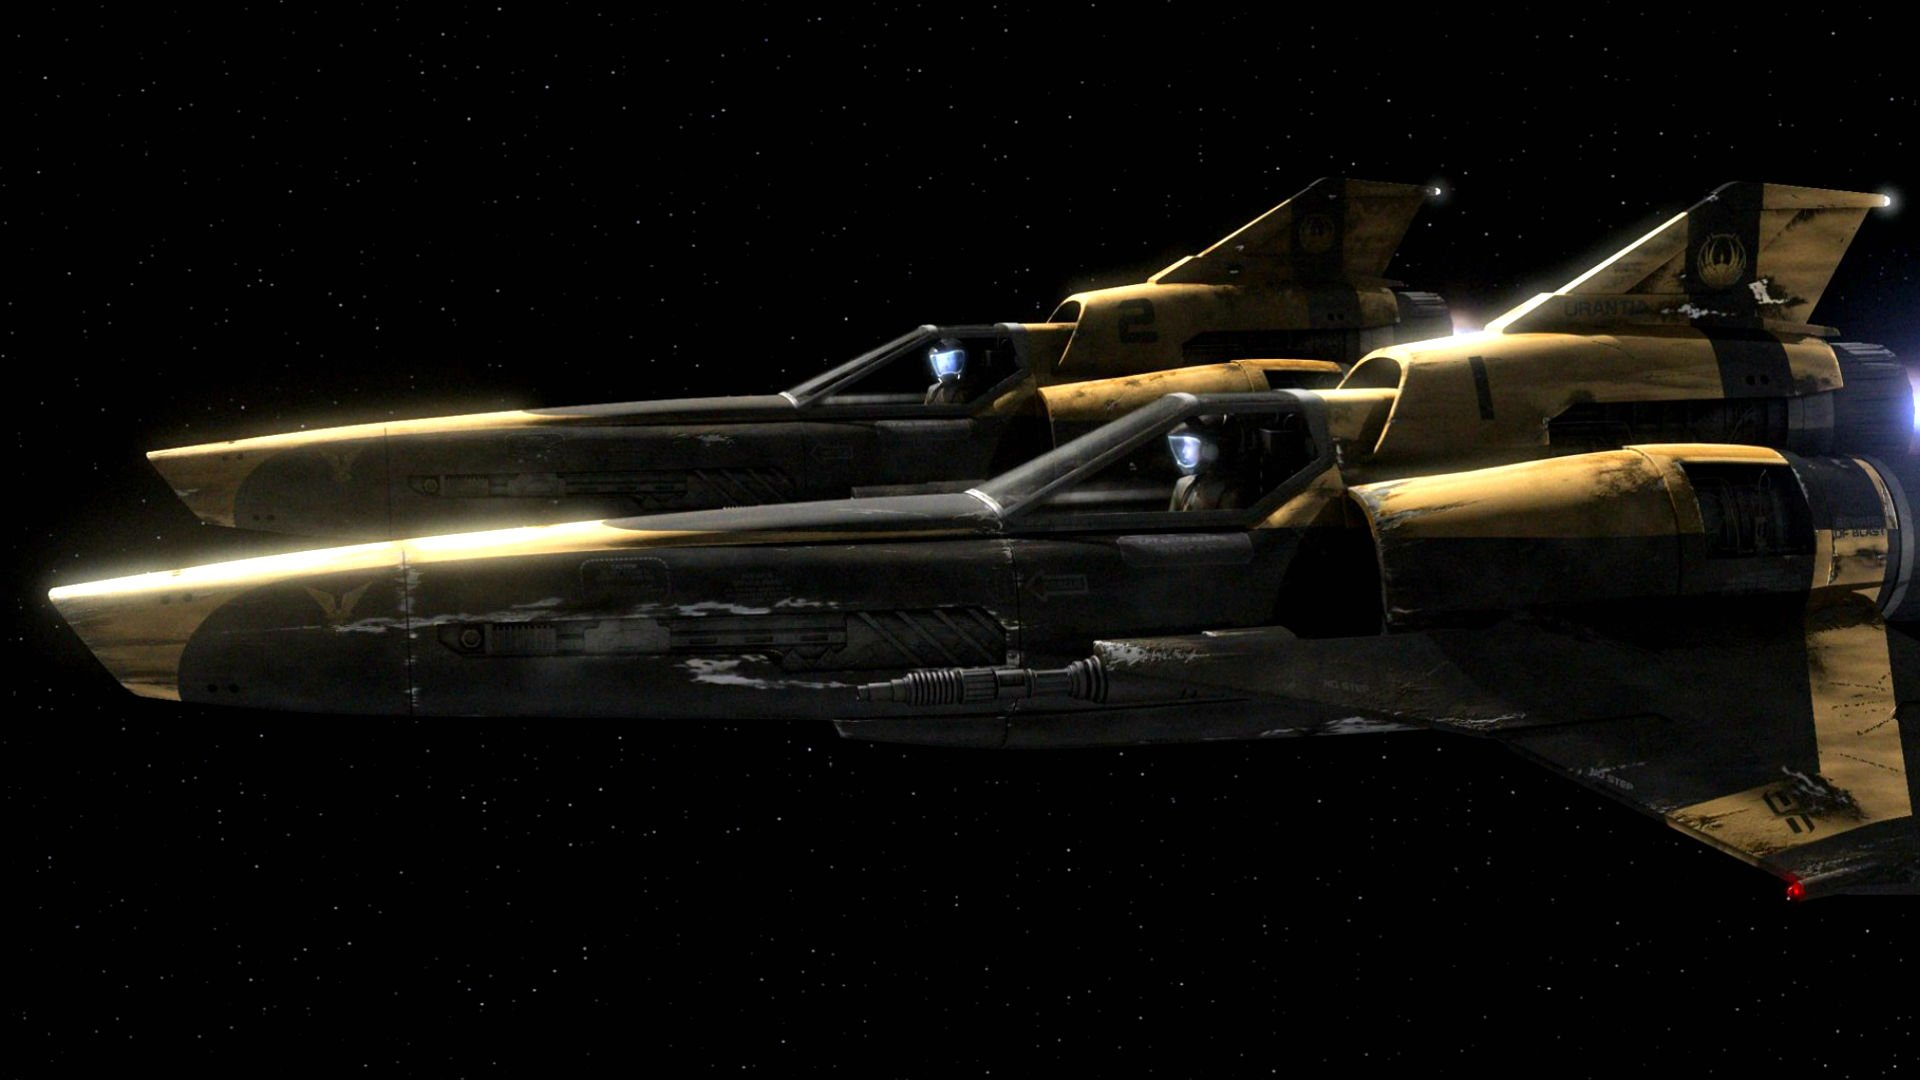 BATTLESTAR-GALACTICA-action-adventure-drama-sci-fi-spaceship-wallpaper-wpc5802559